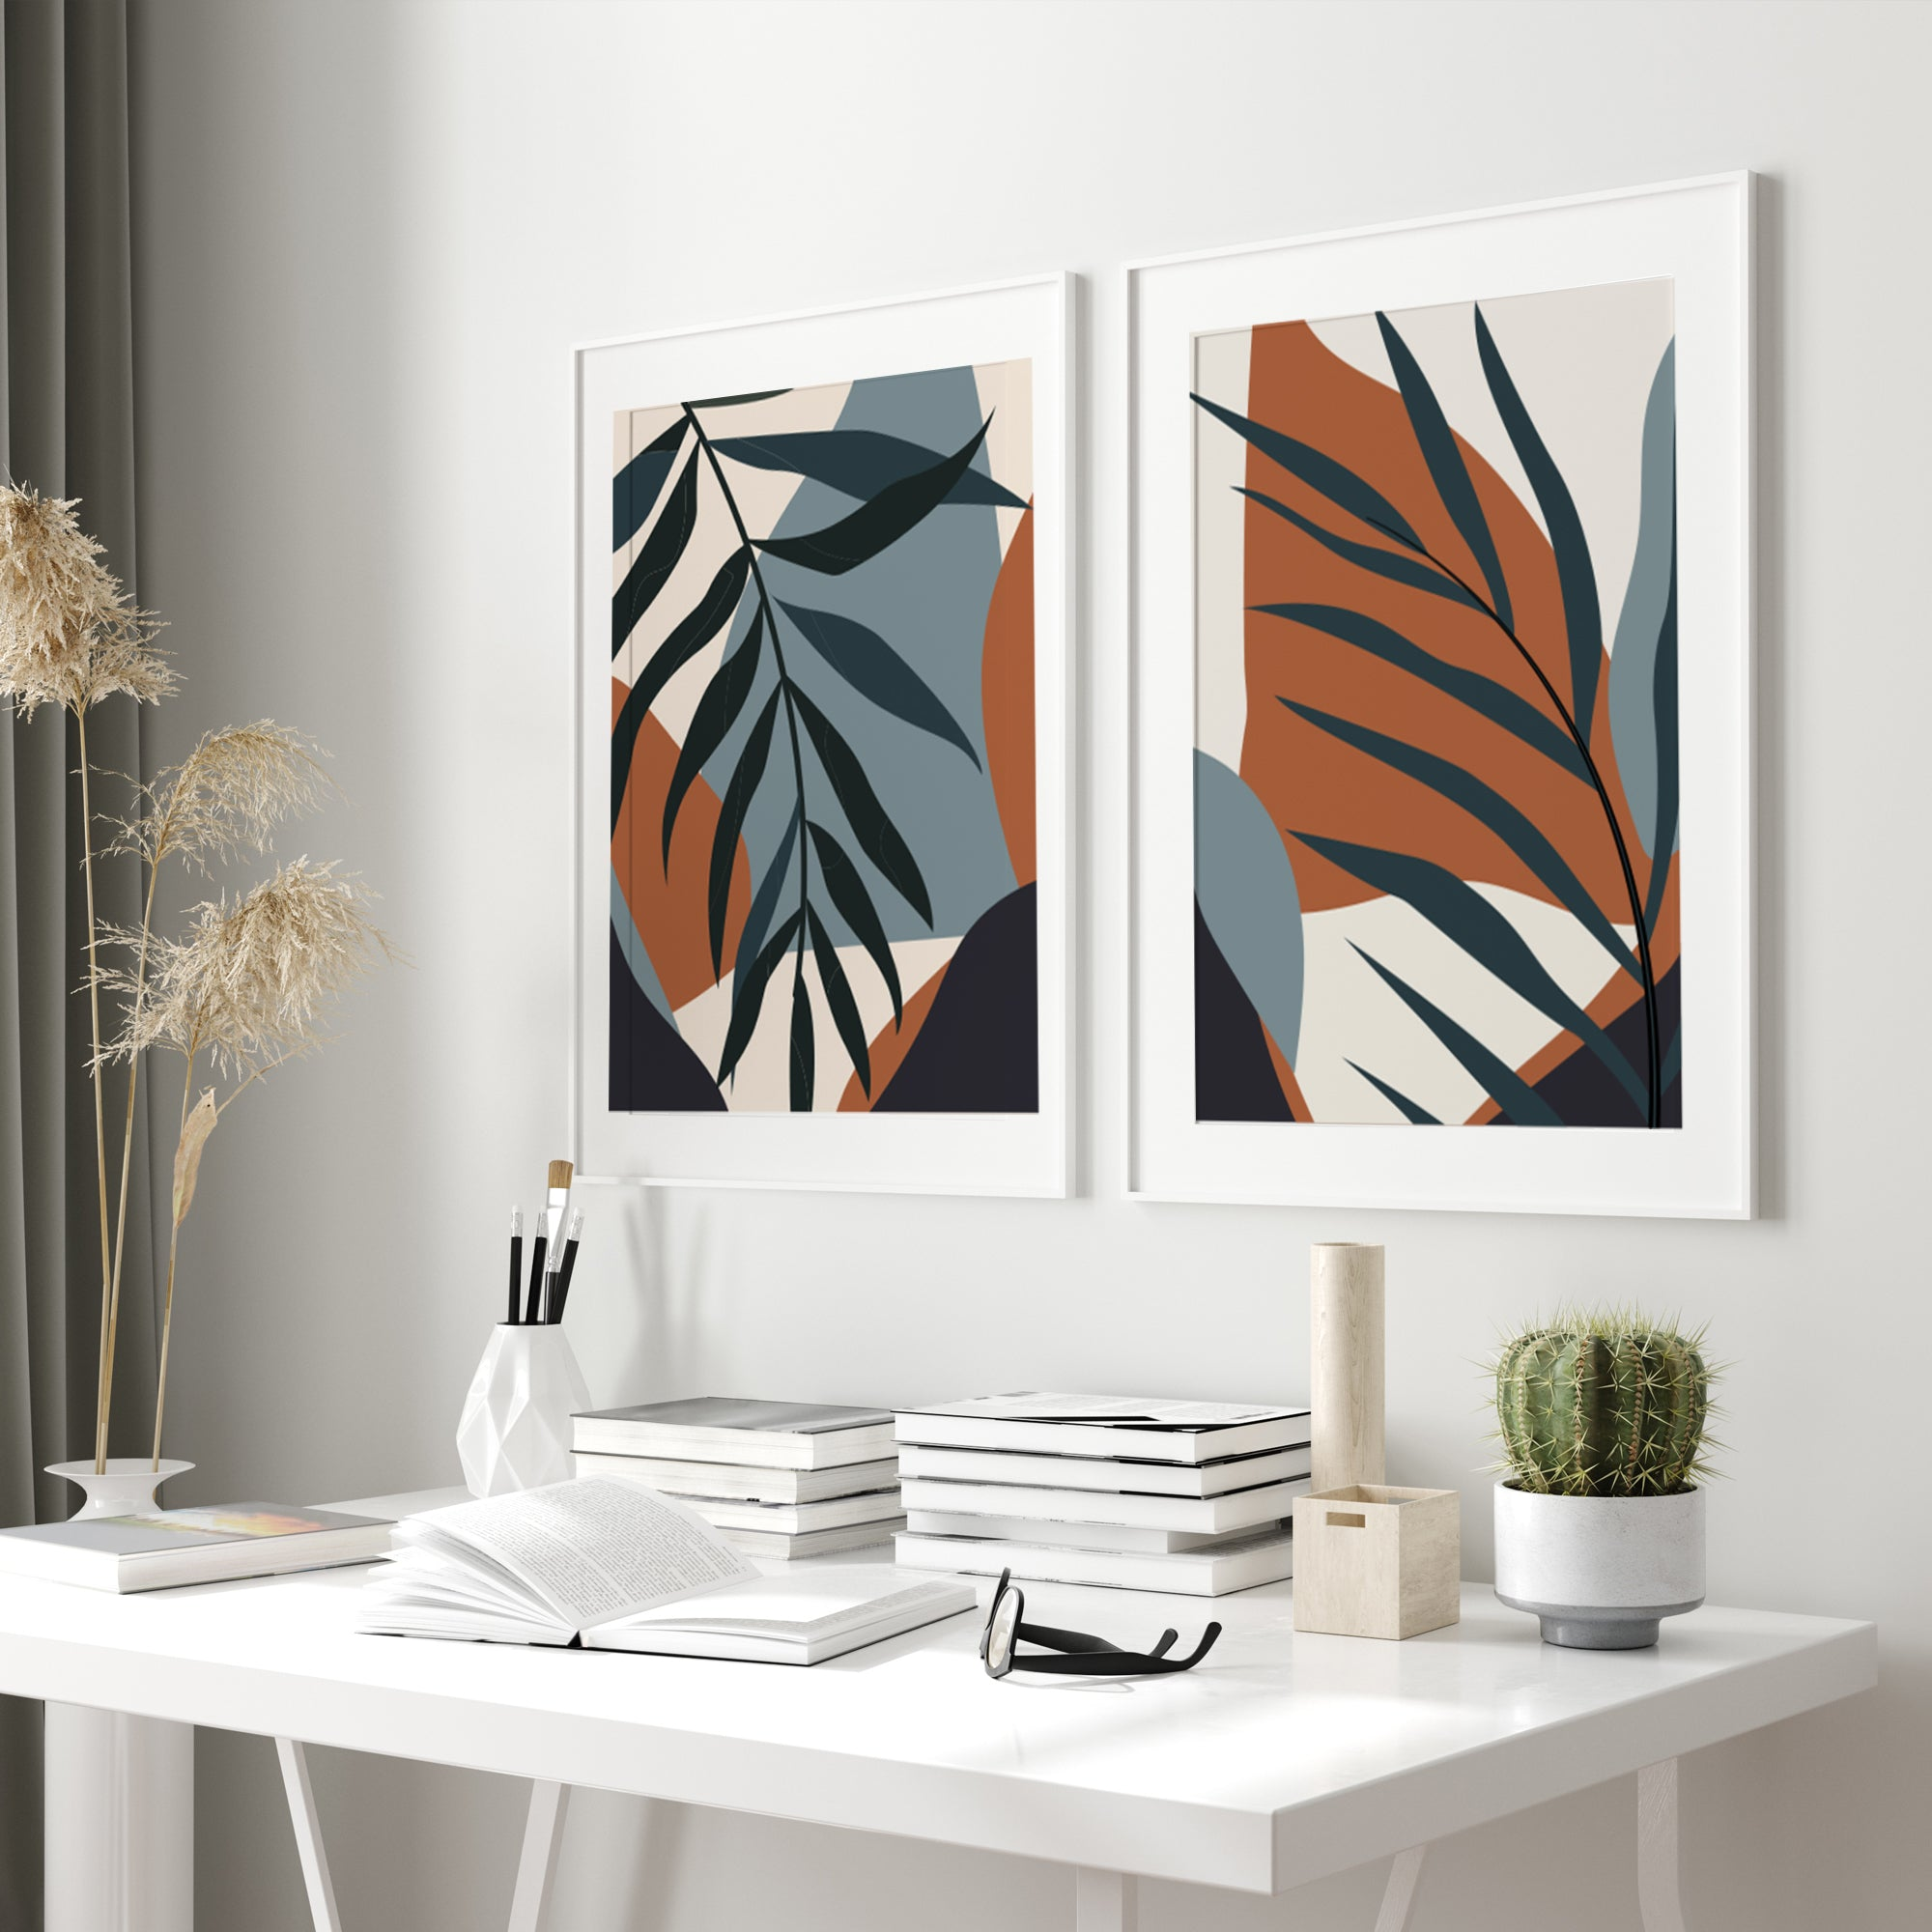 Palm tree print, minimalist Scandinavian poster set of 2, neutral earth tone colors